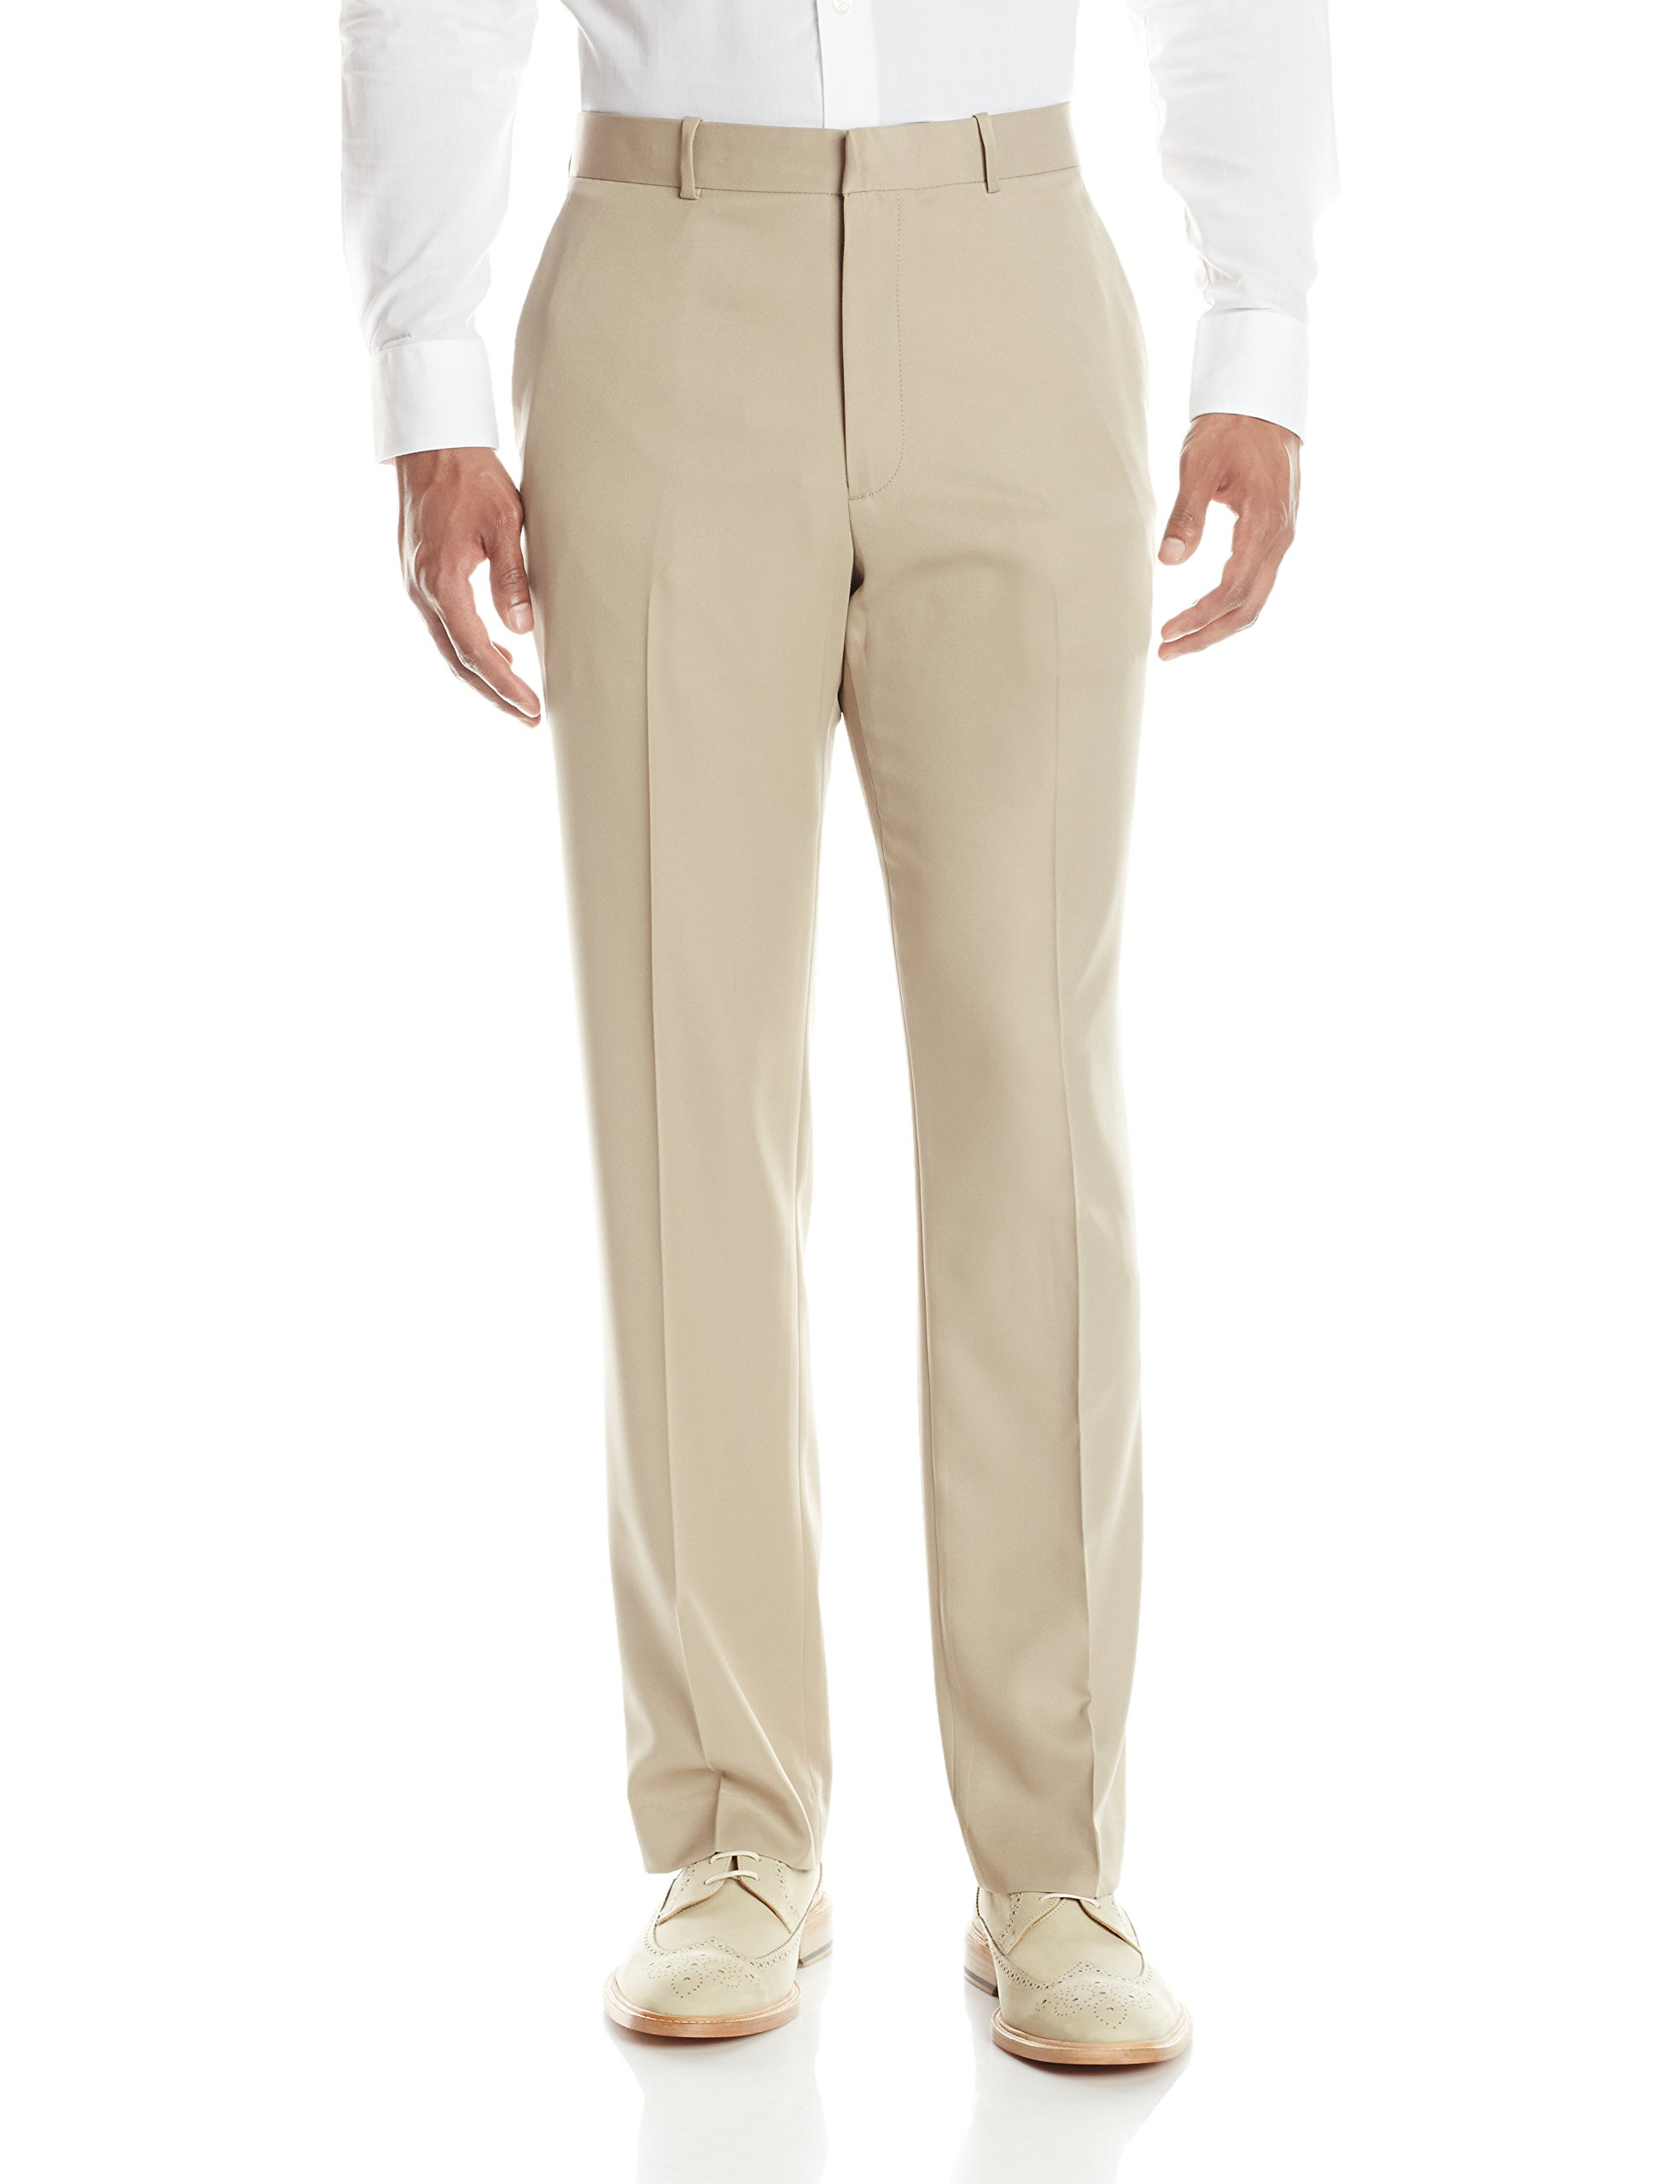 Perry Ellis Men's Portfolio Solid Modern Fit Performance Pant, Toast, 38x30